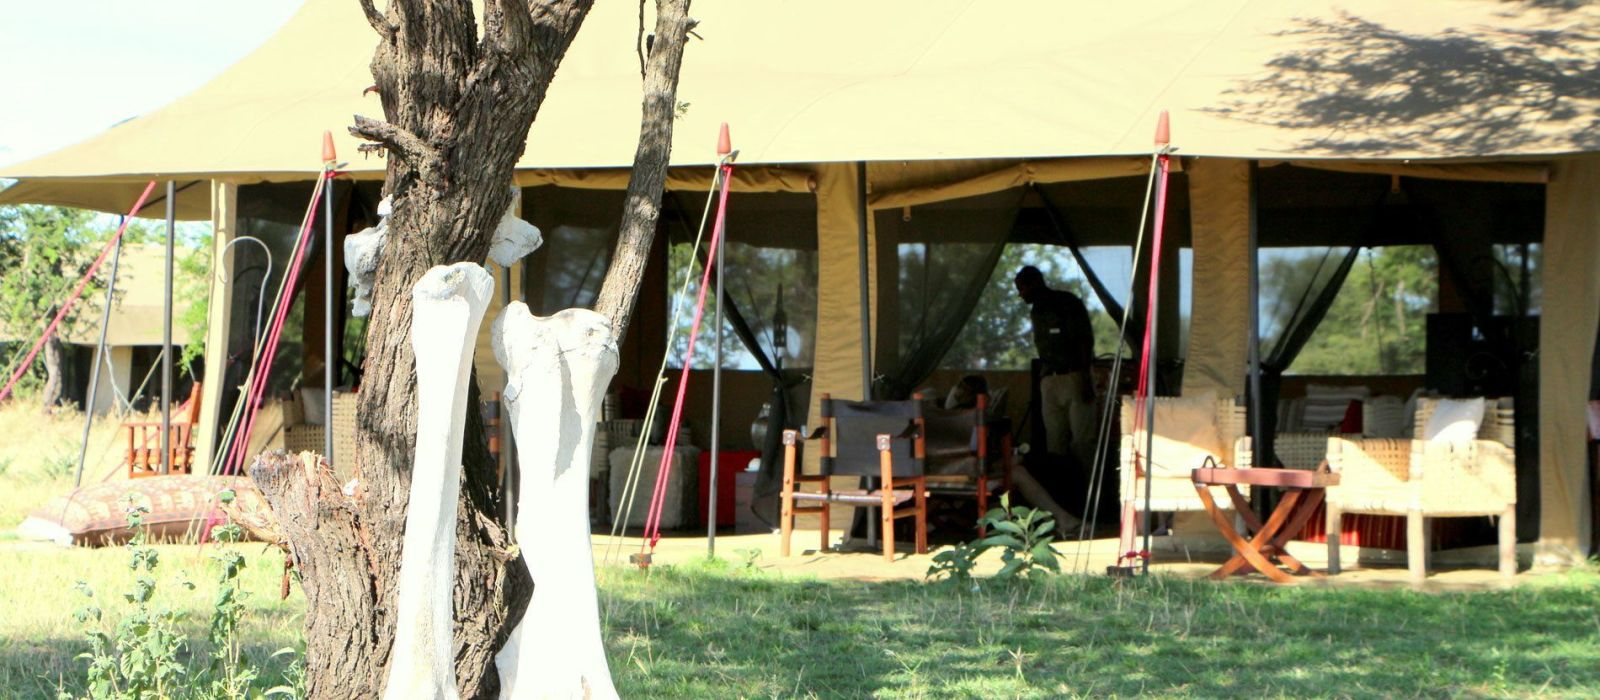 Hotel Kimondo Camp (North) Tanzania